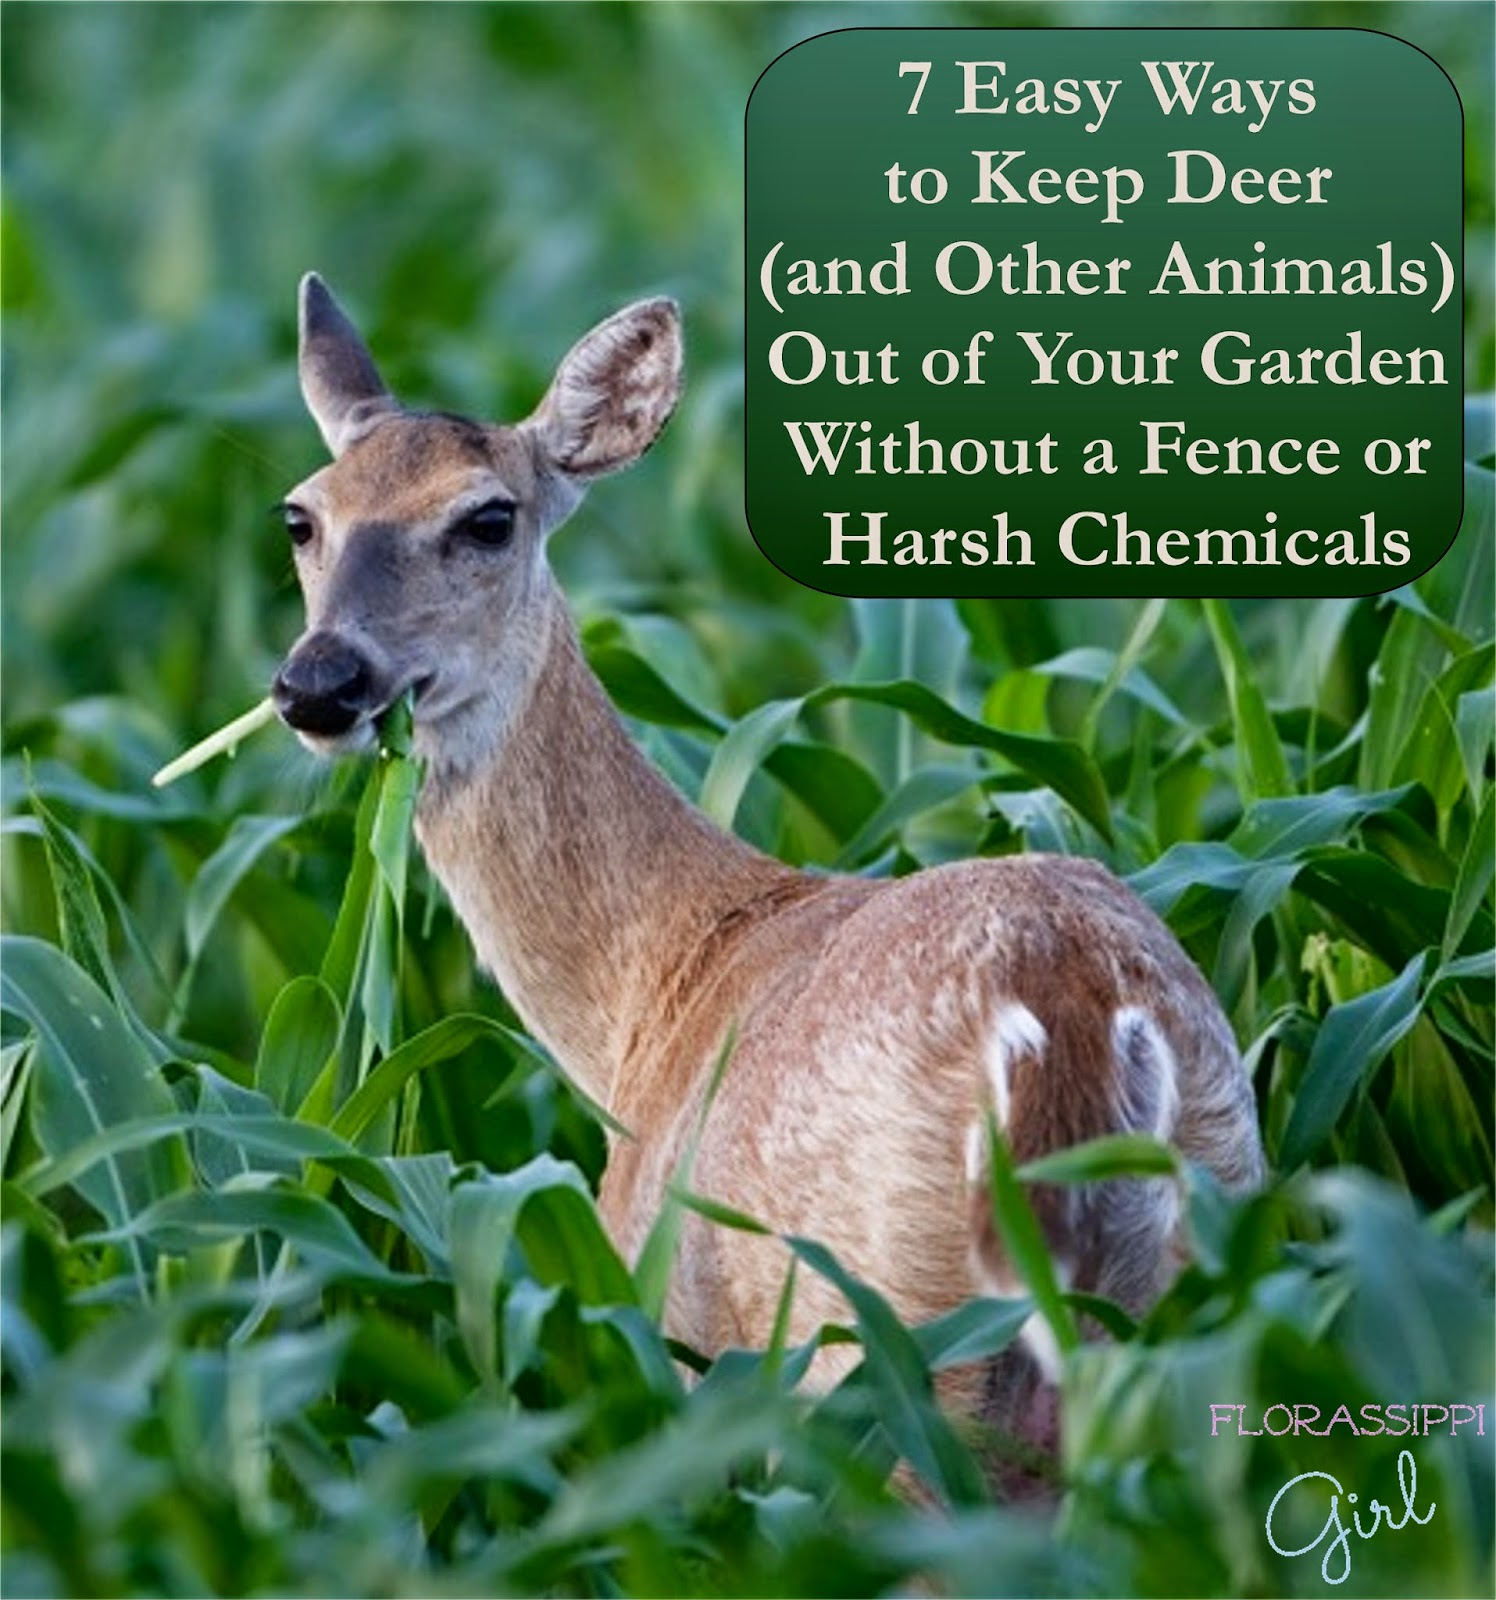 7 easy ways to keep deer and other animals out of your garden without a fence or harsh chemicals - How To Keep Animals Out Of Garden